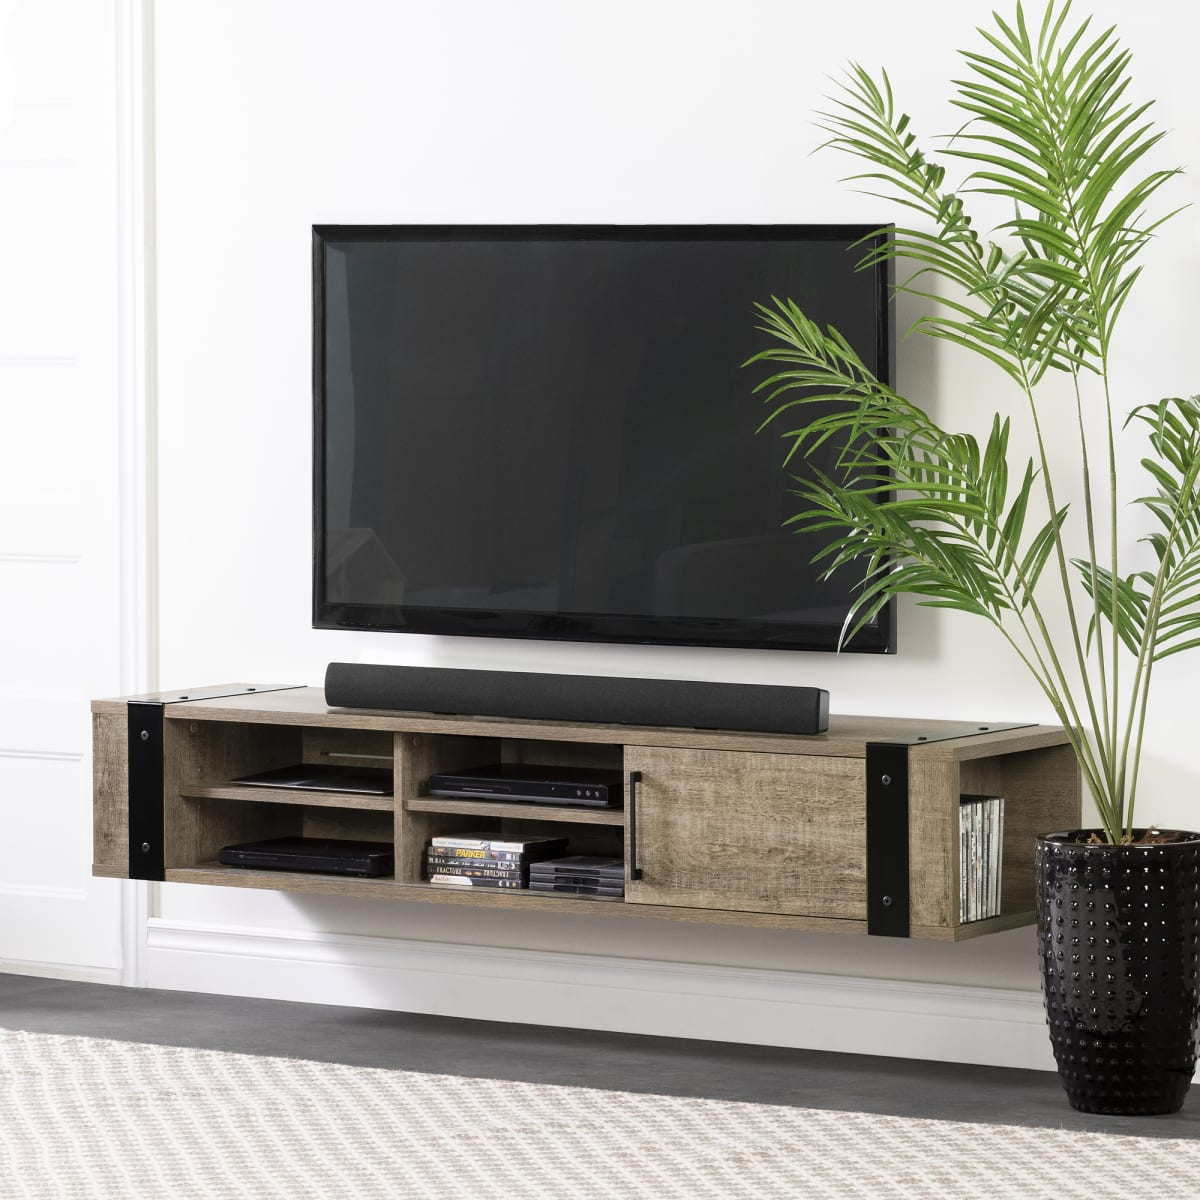 Munich Wall Mounted Media Console Tv Stand Living Room Furniture Products South Shore Furniture Ca Furniture For Sale Designed And Manufactured In North America